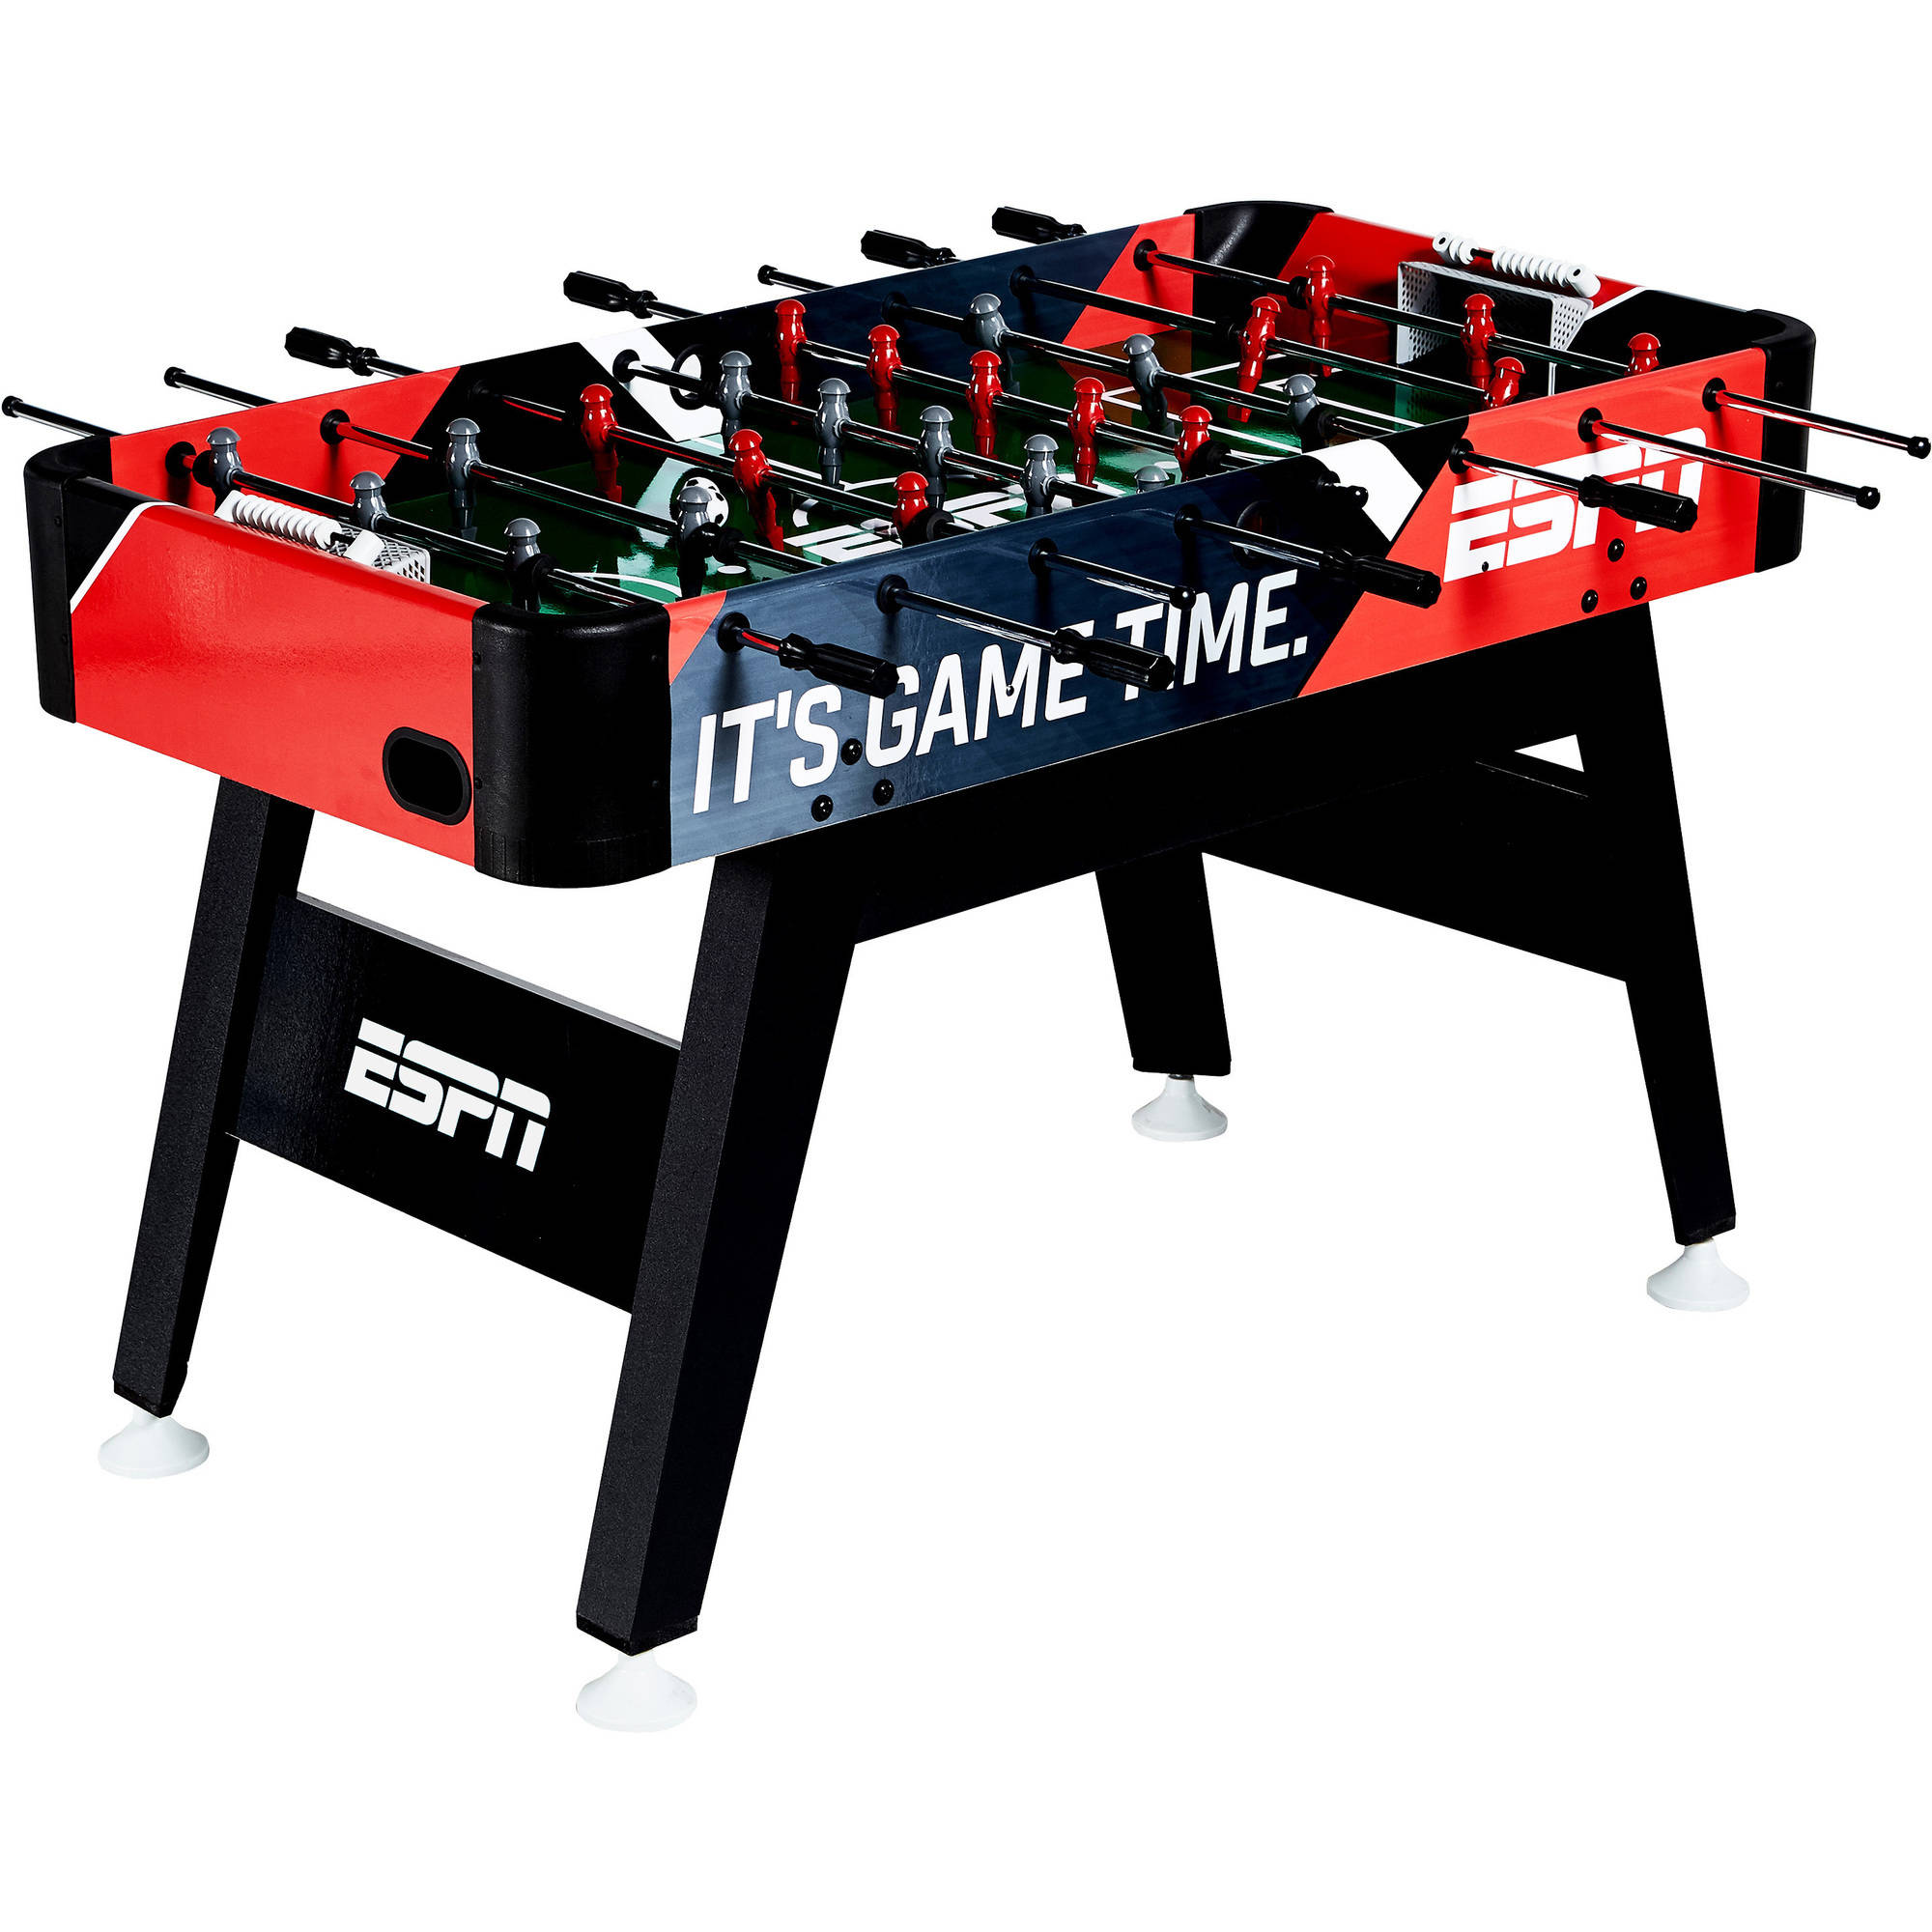 Hathaway Gladiator 48 In Foosball Table For Kids With Easy Folding For  Storage, Robot Graphics, Ergonomic Handles   Walmart.com